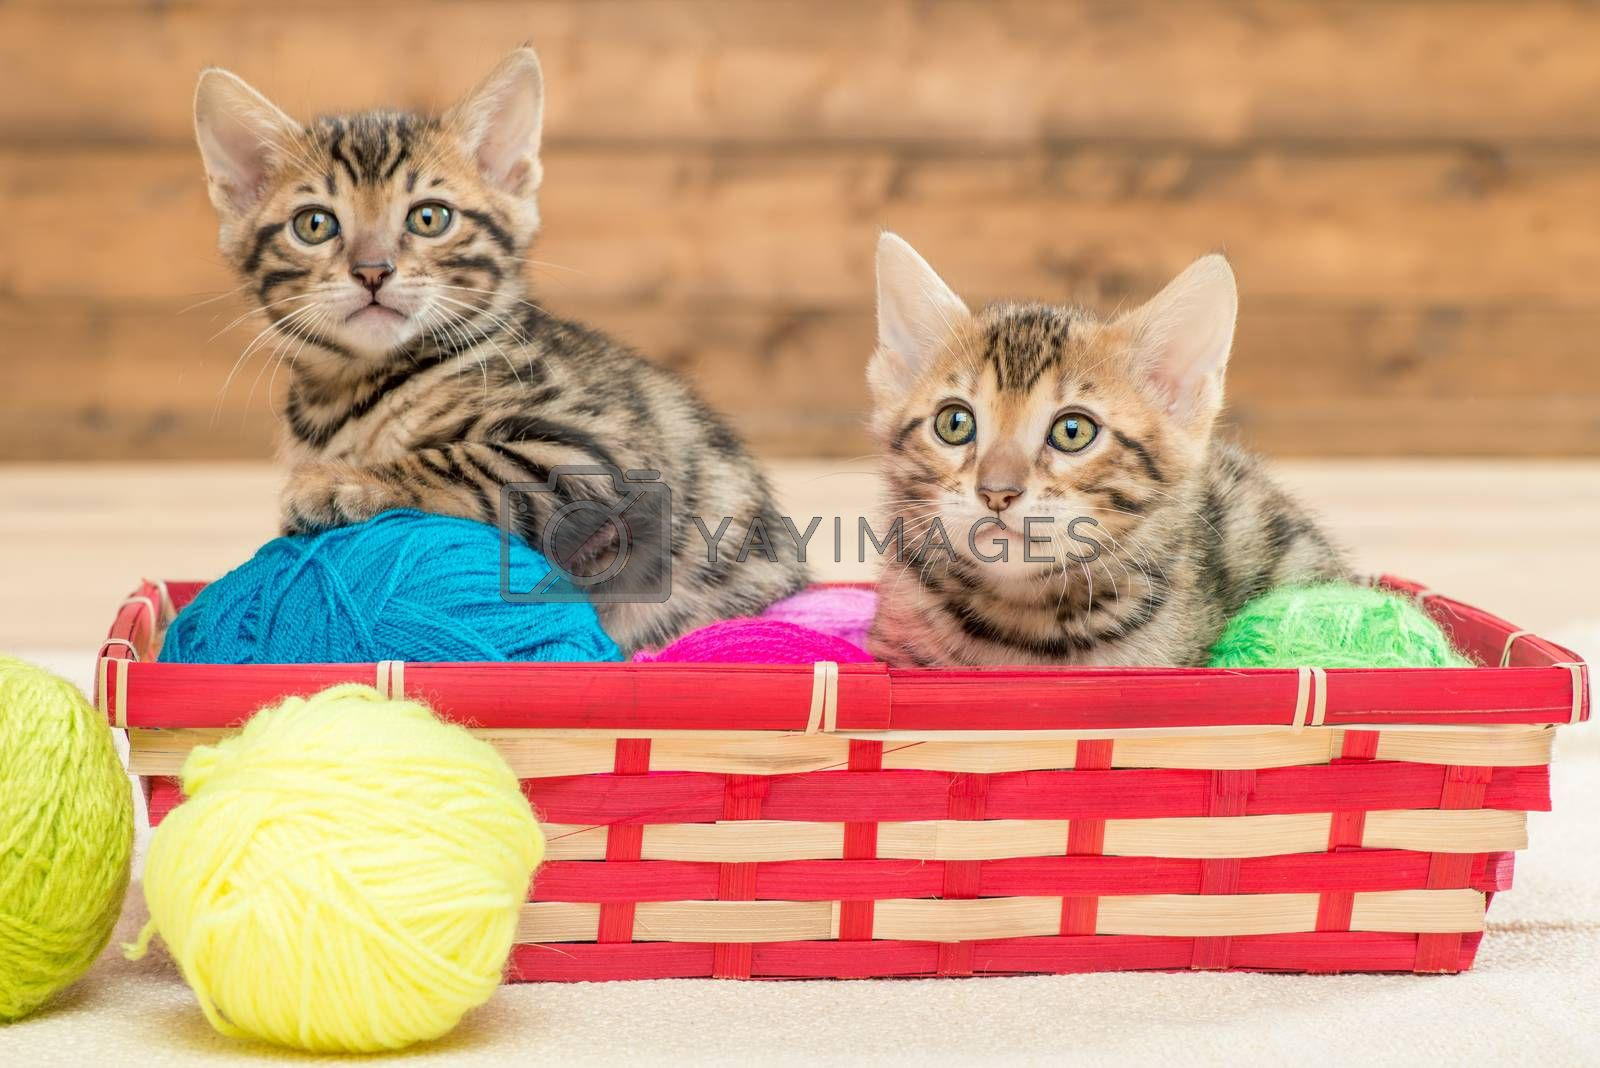 two kittens of bengali breed sit in a wicker basket, play with t by Labunskiy K.